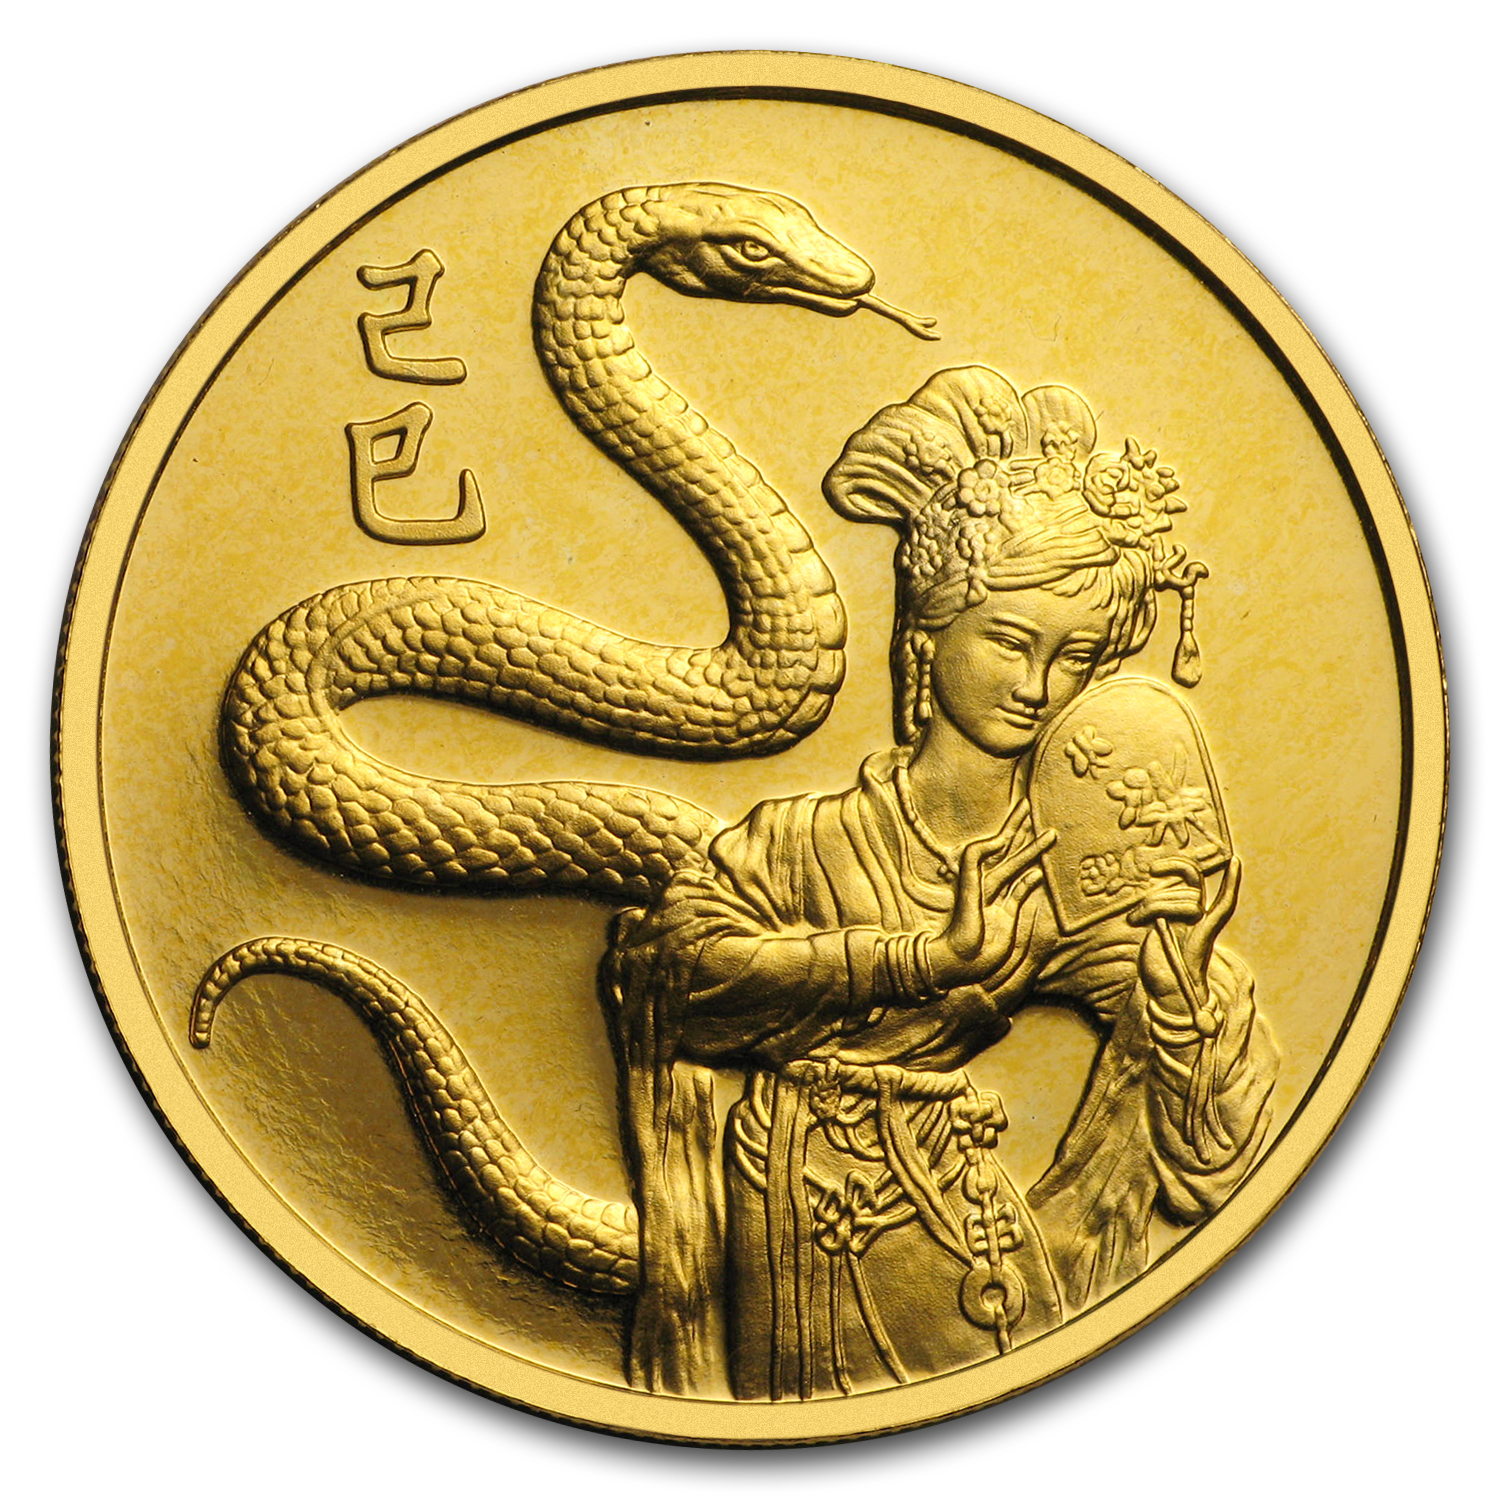 1989 Singapore 1/2 oz Proof Gold 50 Singold Snake